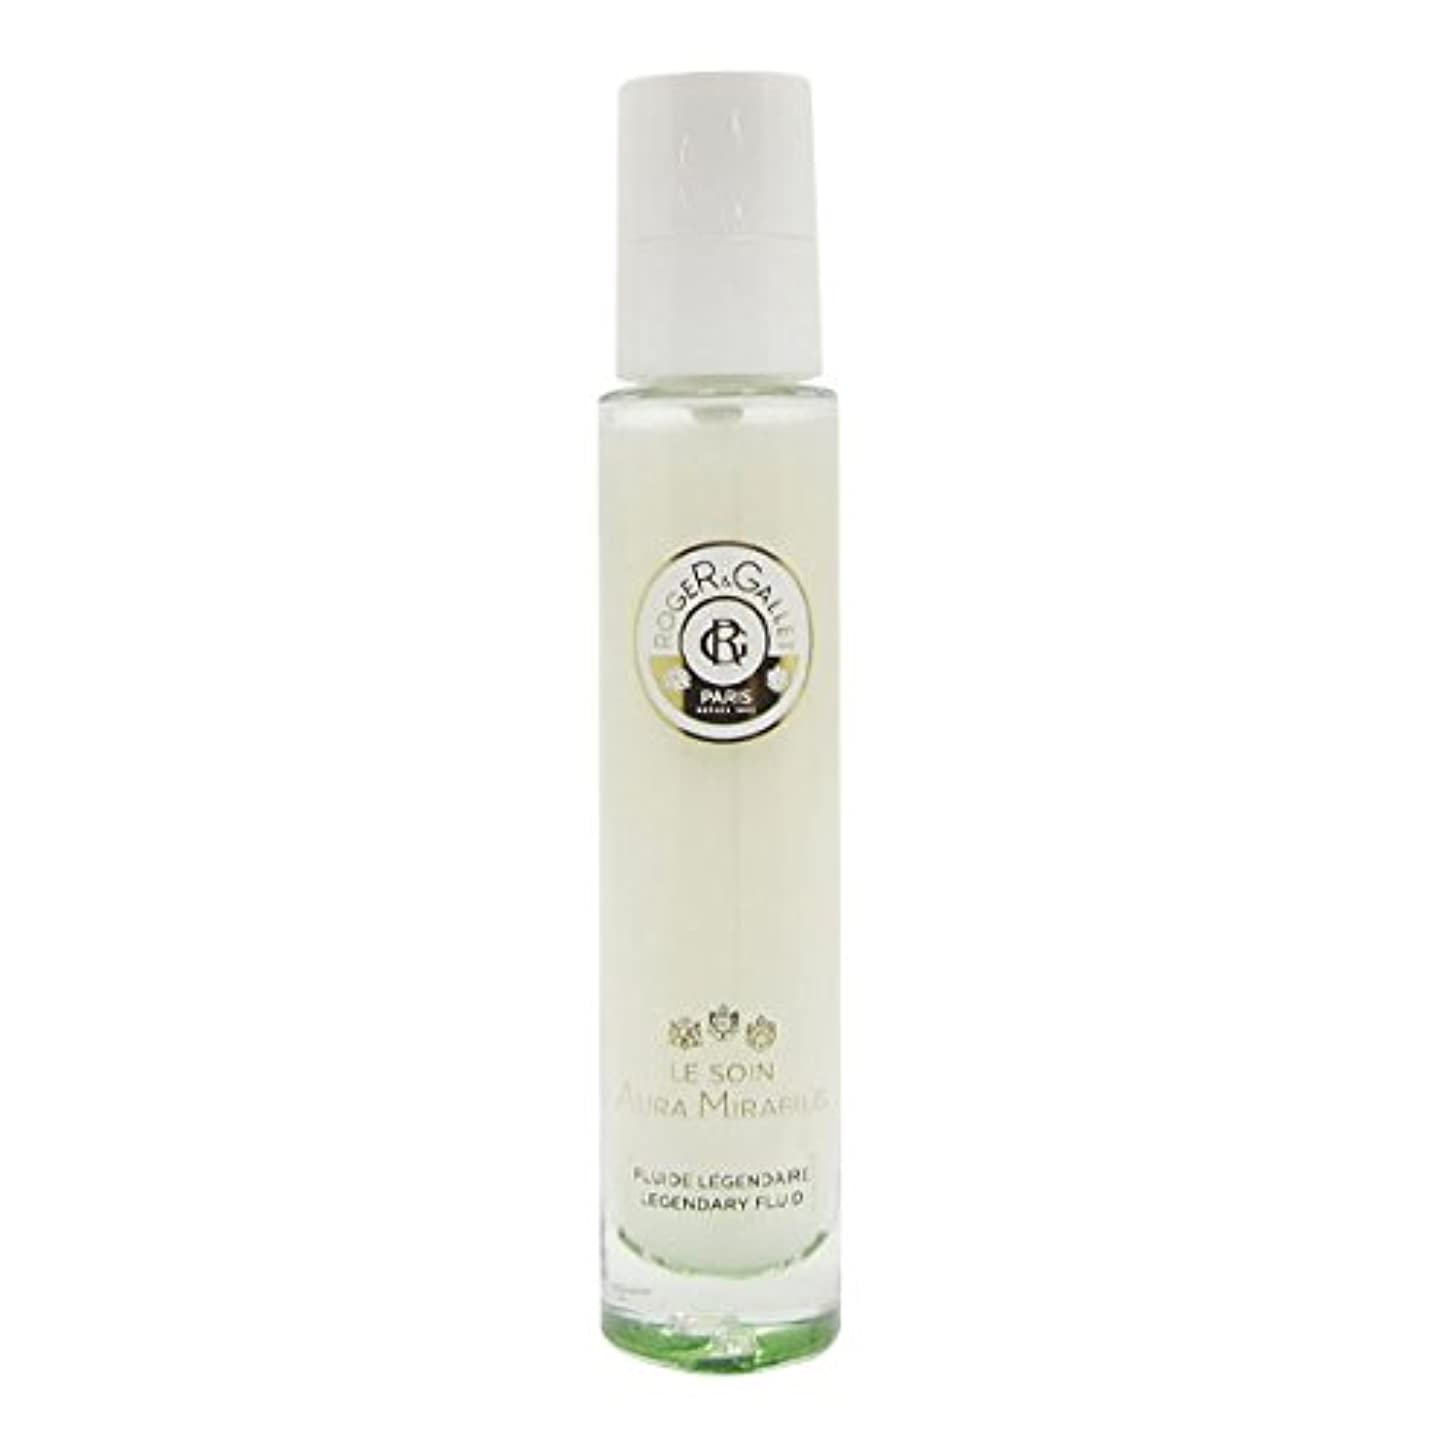 Roger Gallet Aura Mirabilis Legendary Fluid 30ml [並行輸入品]